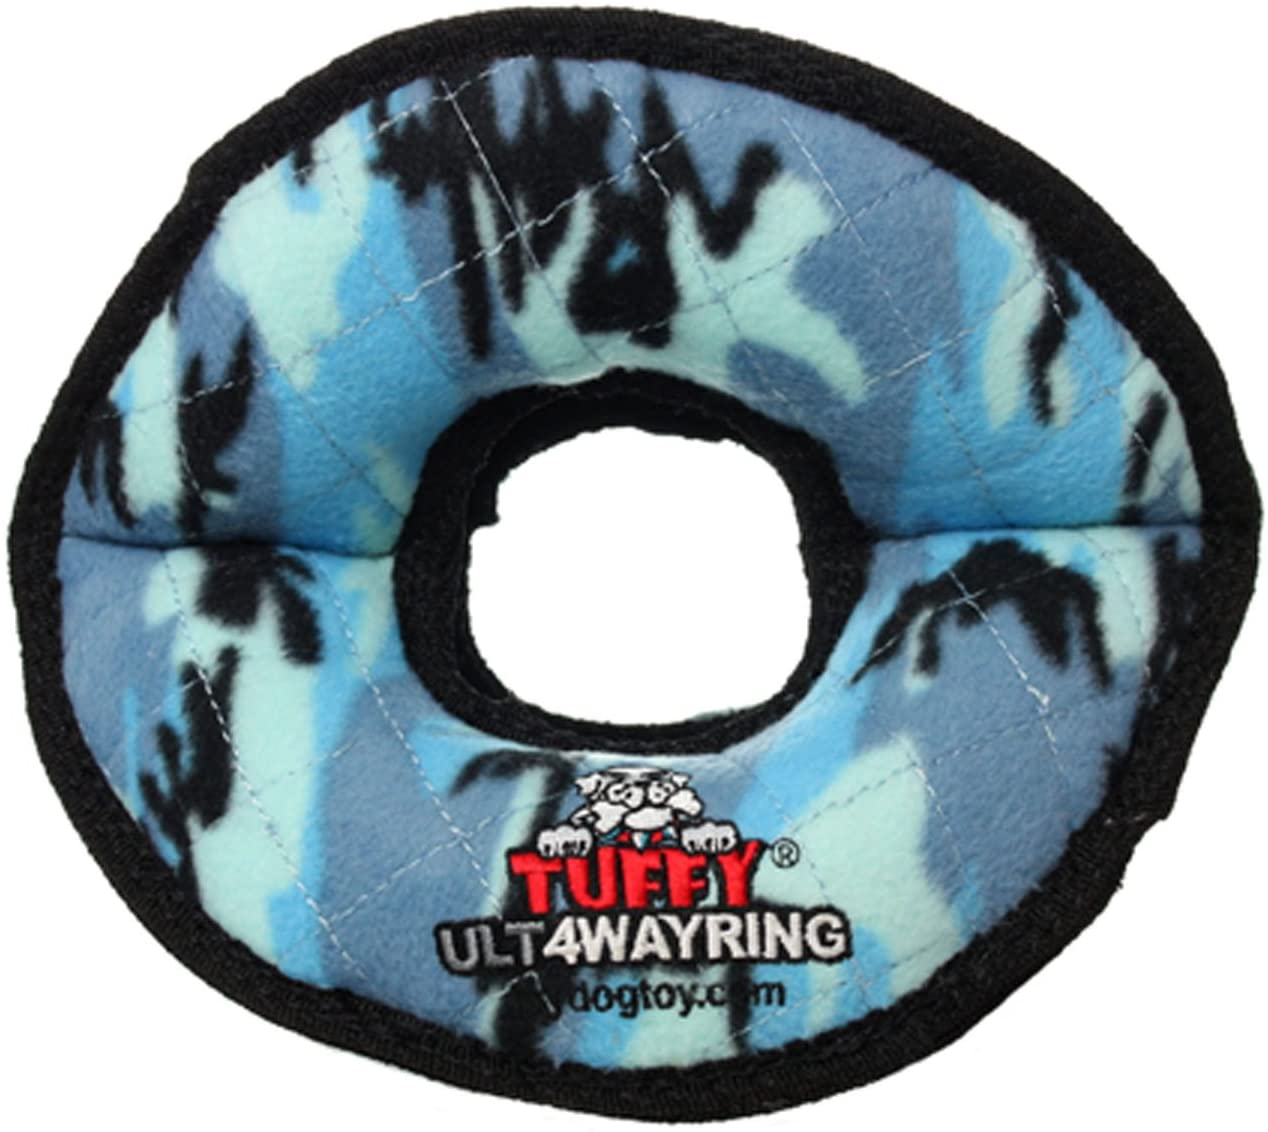 Tuffy's Ultimate 4-Way Ring Dog Toy, Camo Blue Image